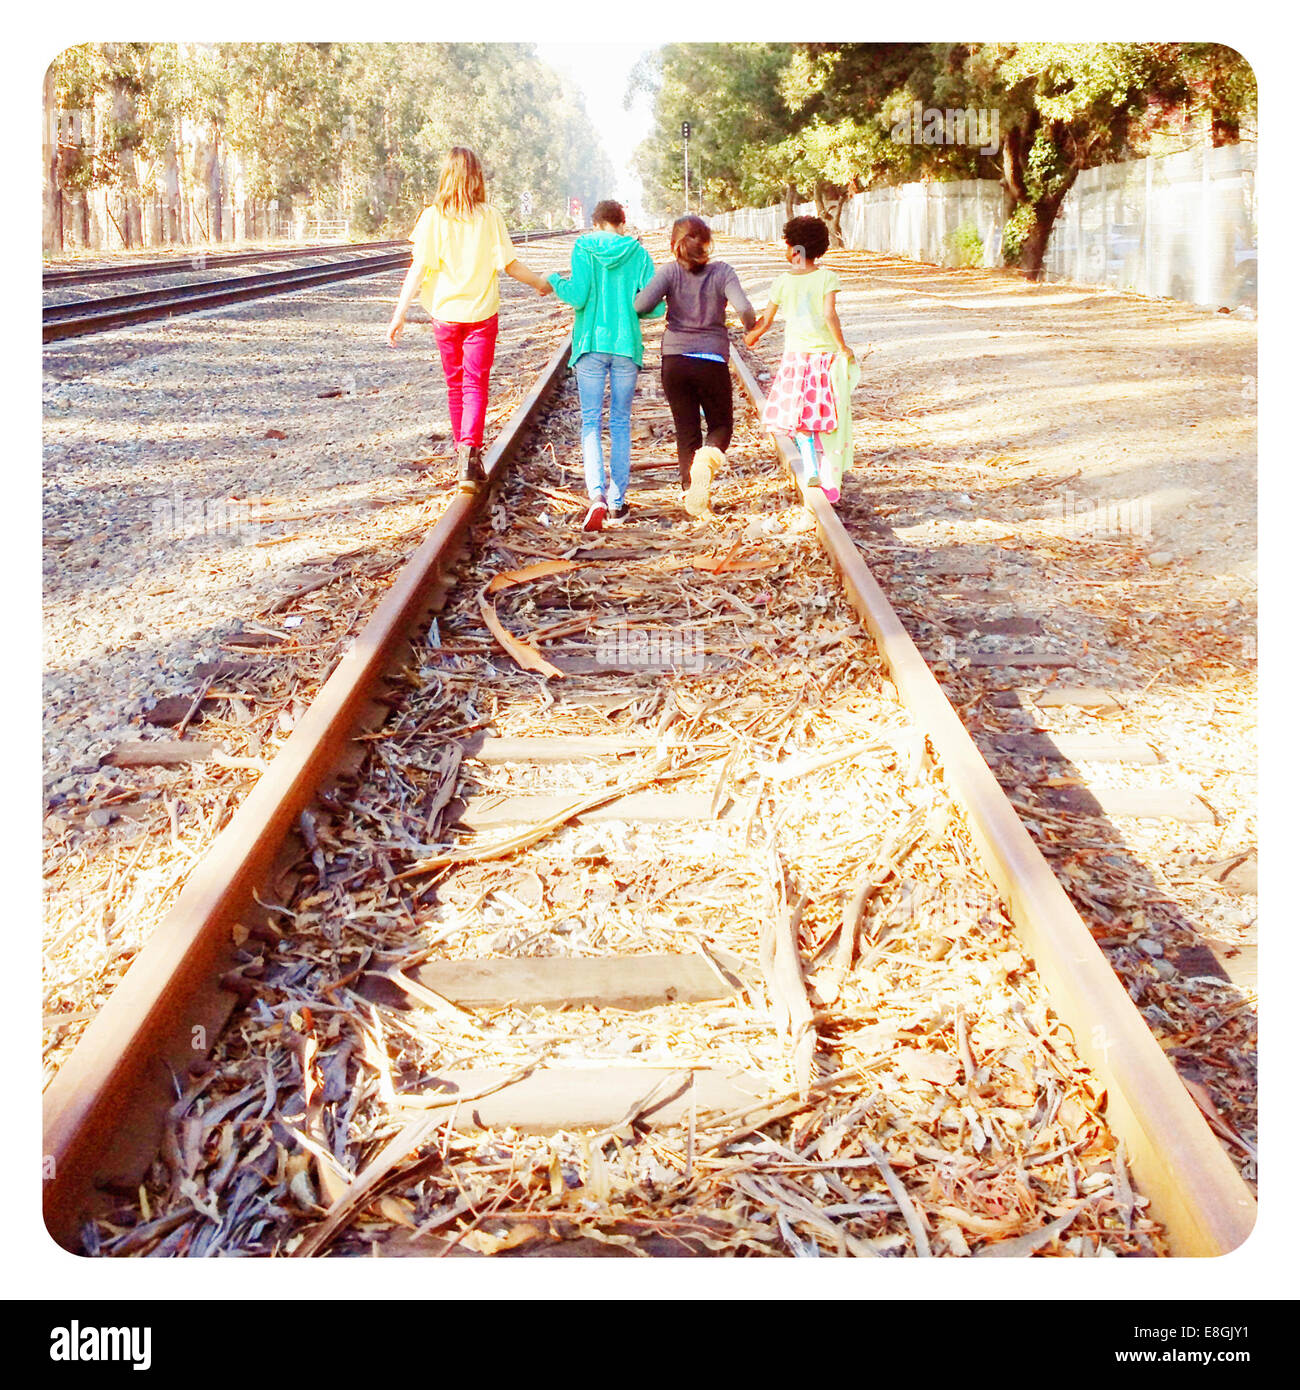 Four children walking along railway tracks - Stock Image